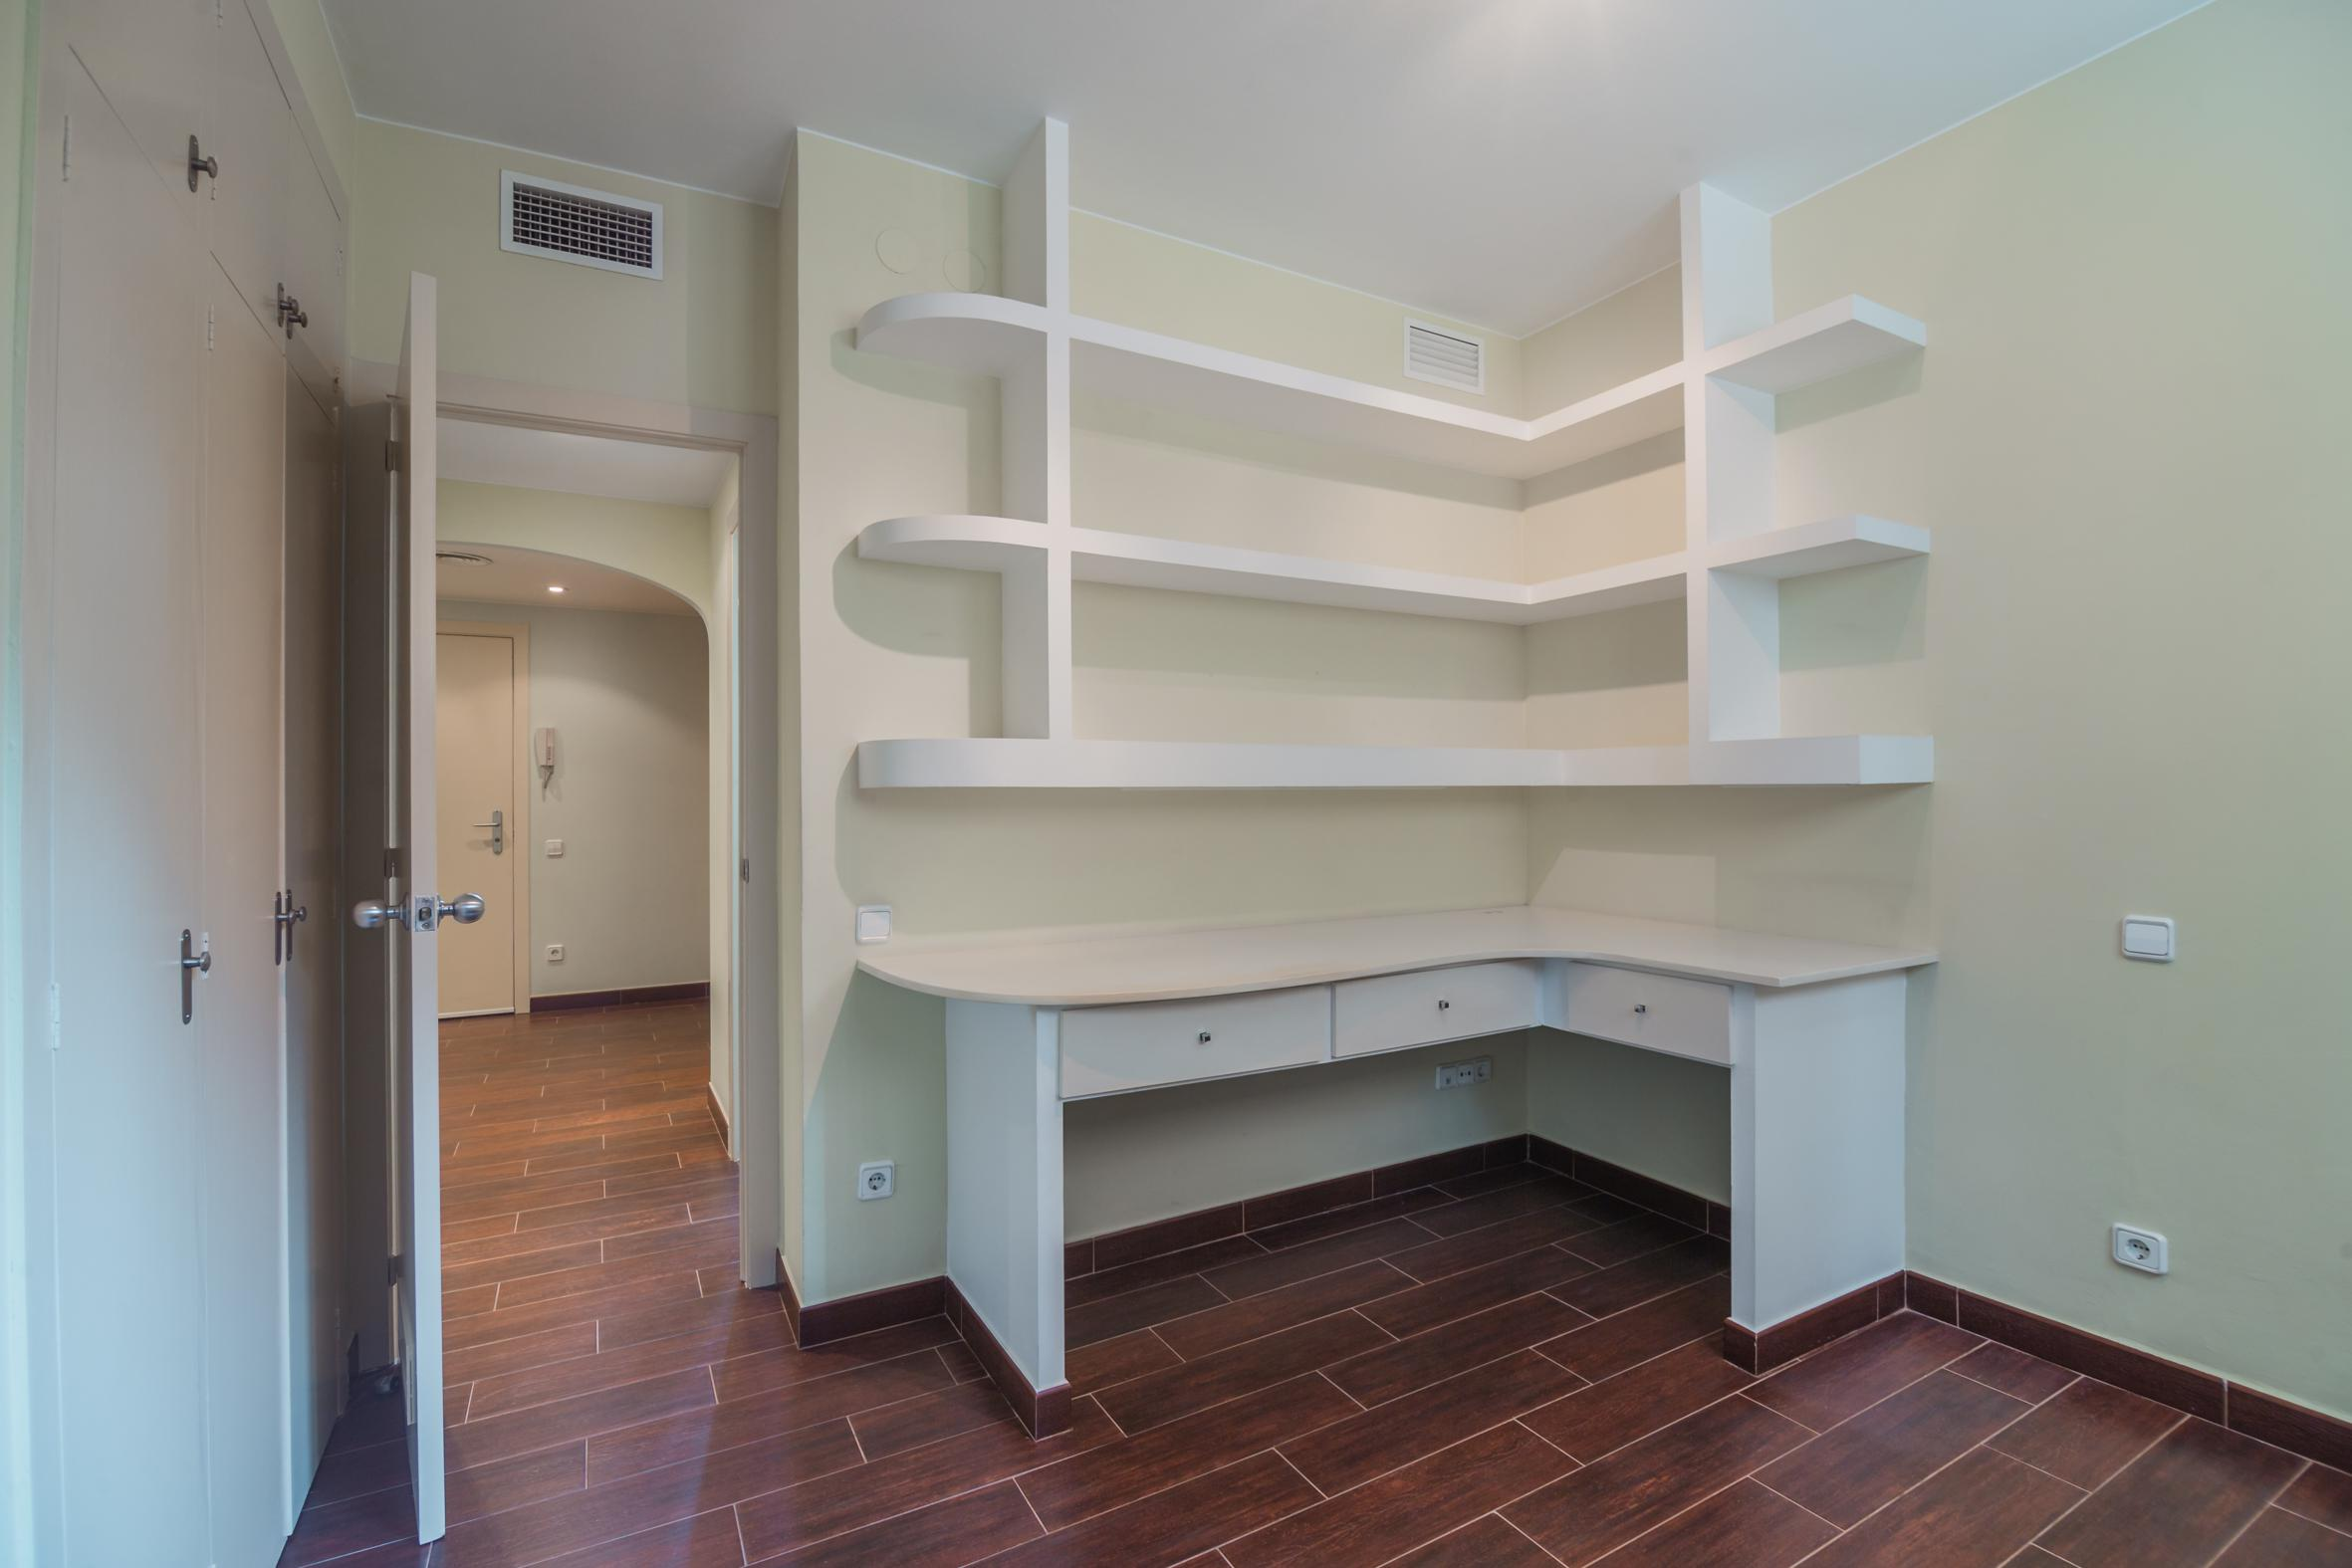 246902 Flat for sale in Les Corts, Pedralbes 16